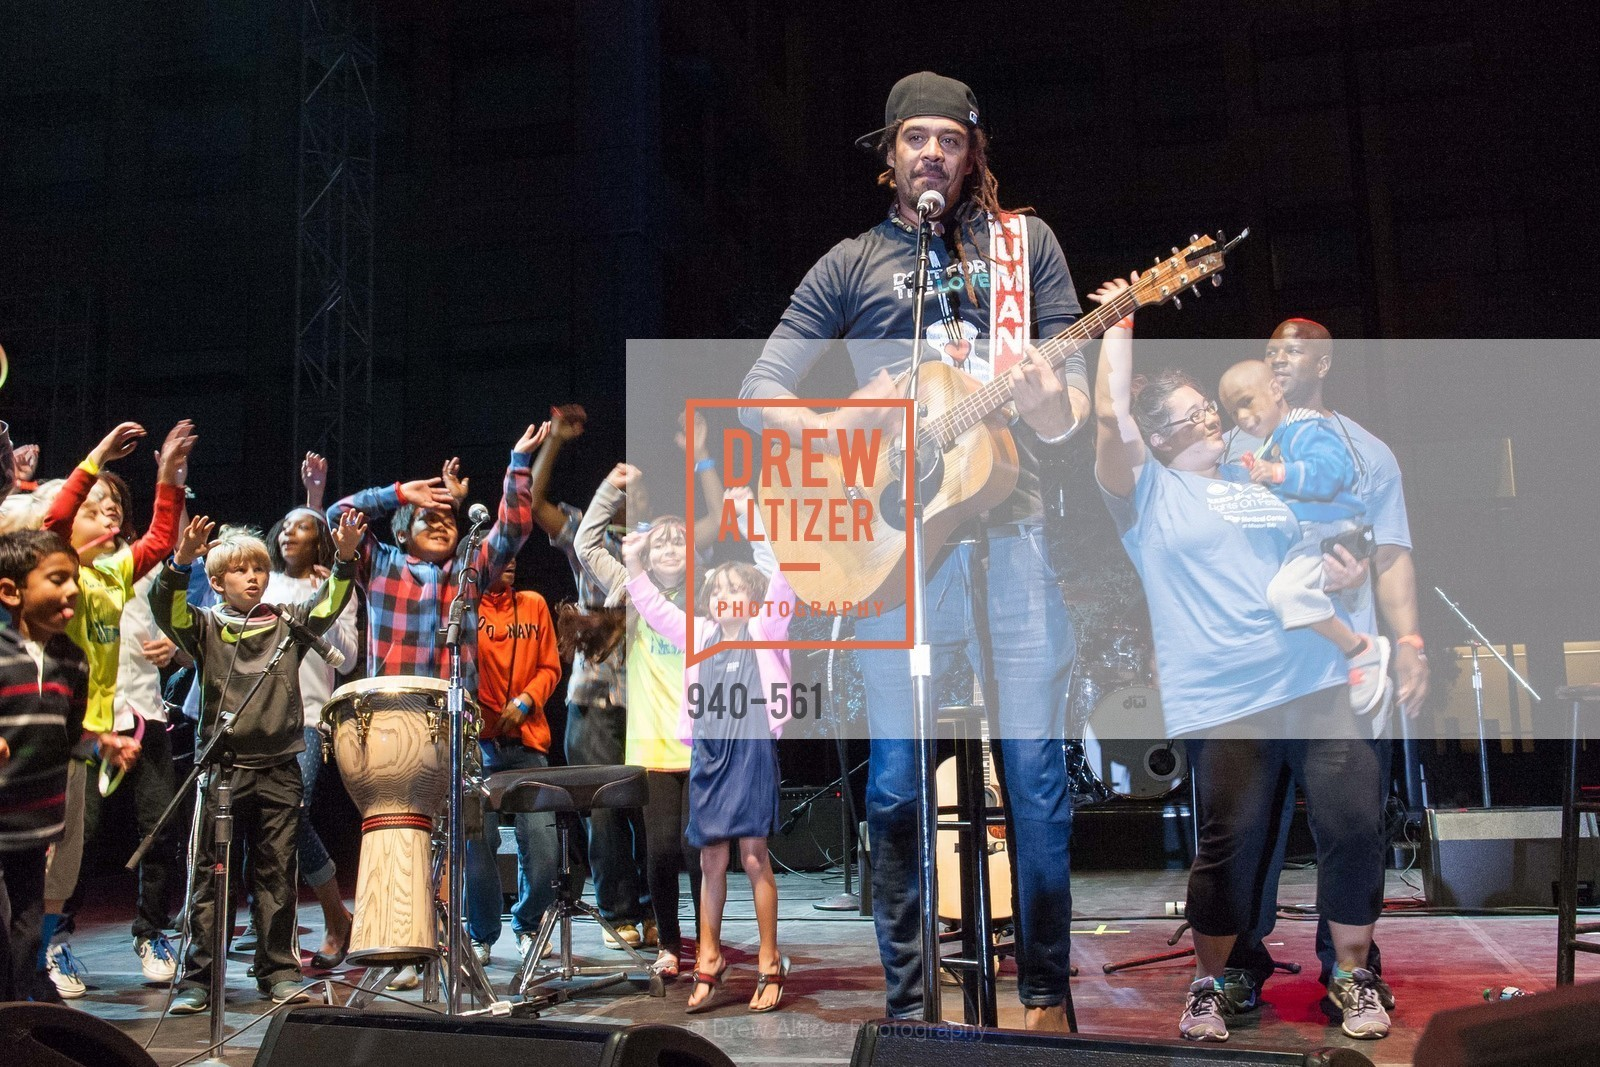 Performance By Michael Franti, Photo #940-561